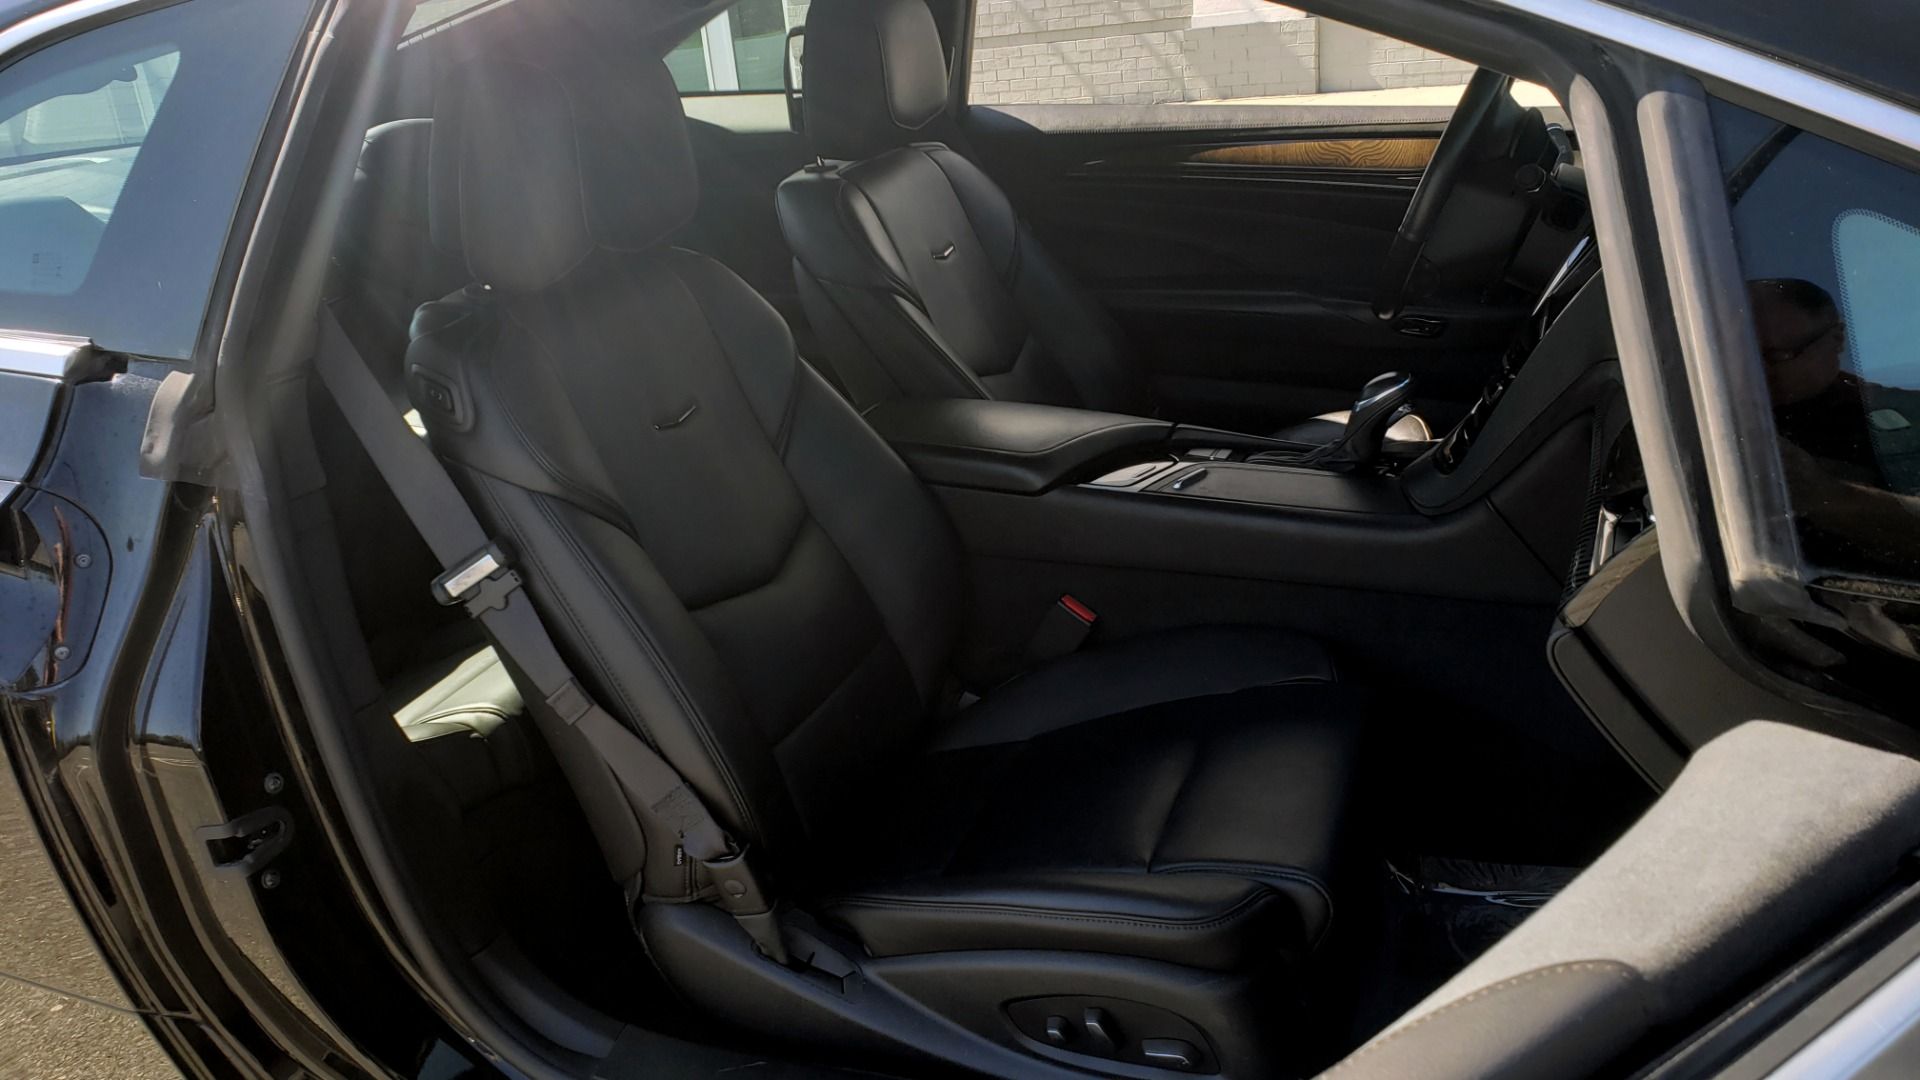 Used 2014 Cadillac ELR 2DR COUPE / HYBRID / NAV / BOSE / HEATED SEATS / REARVIEW for sale $19,995 at Formula Imports in Charlotte NC 28227 69